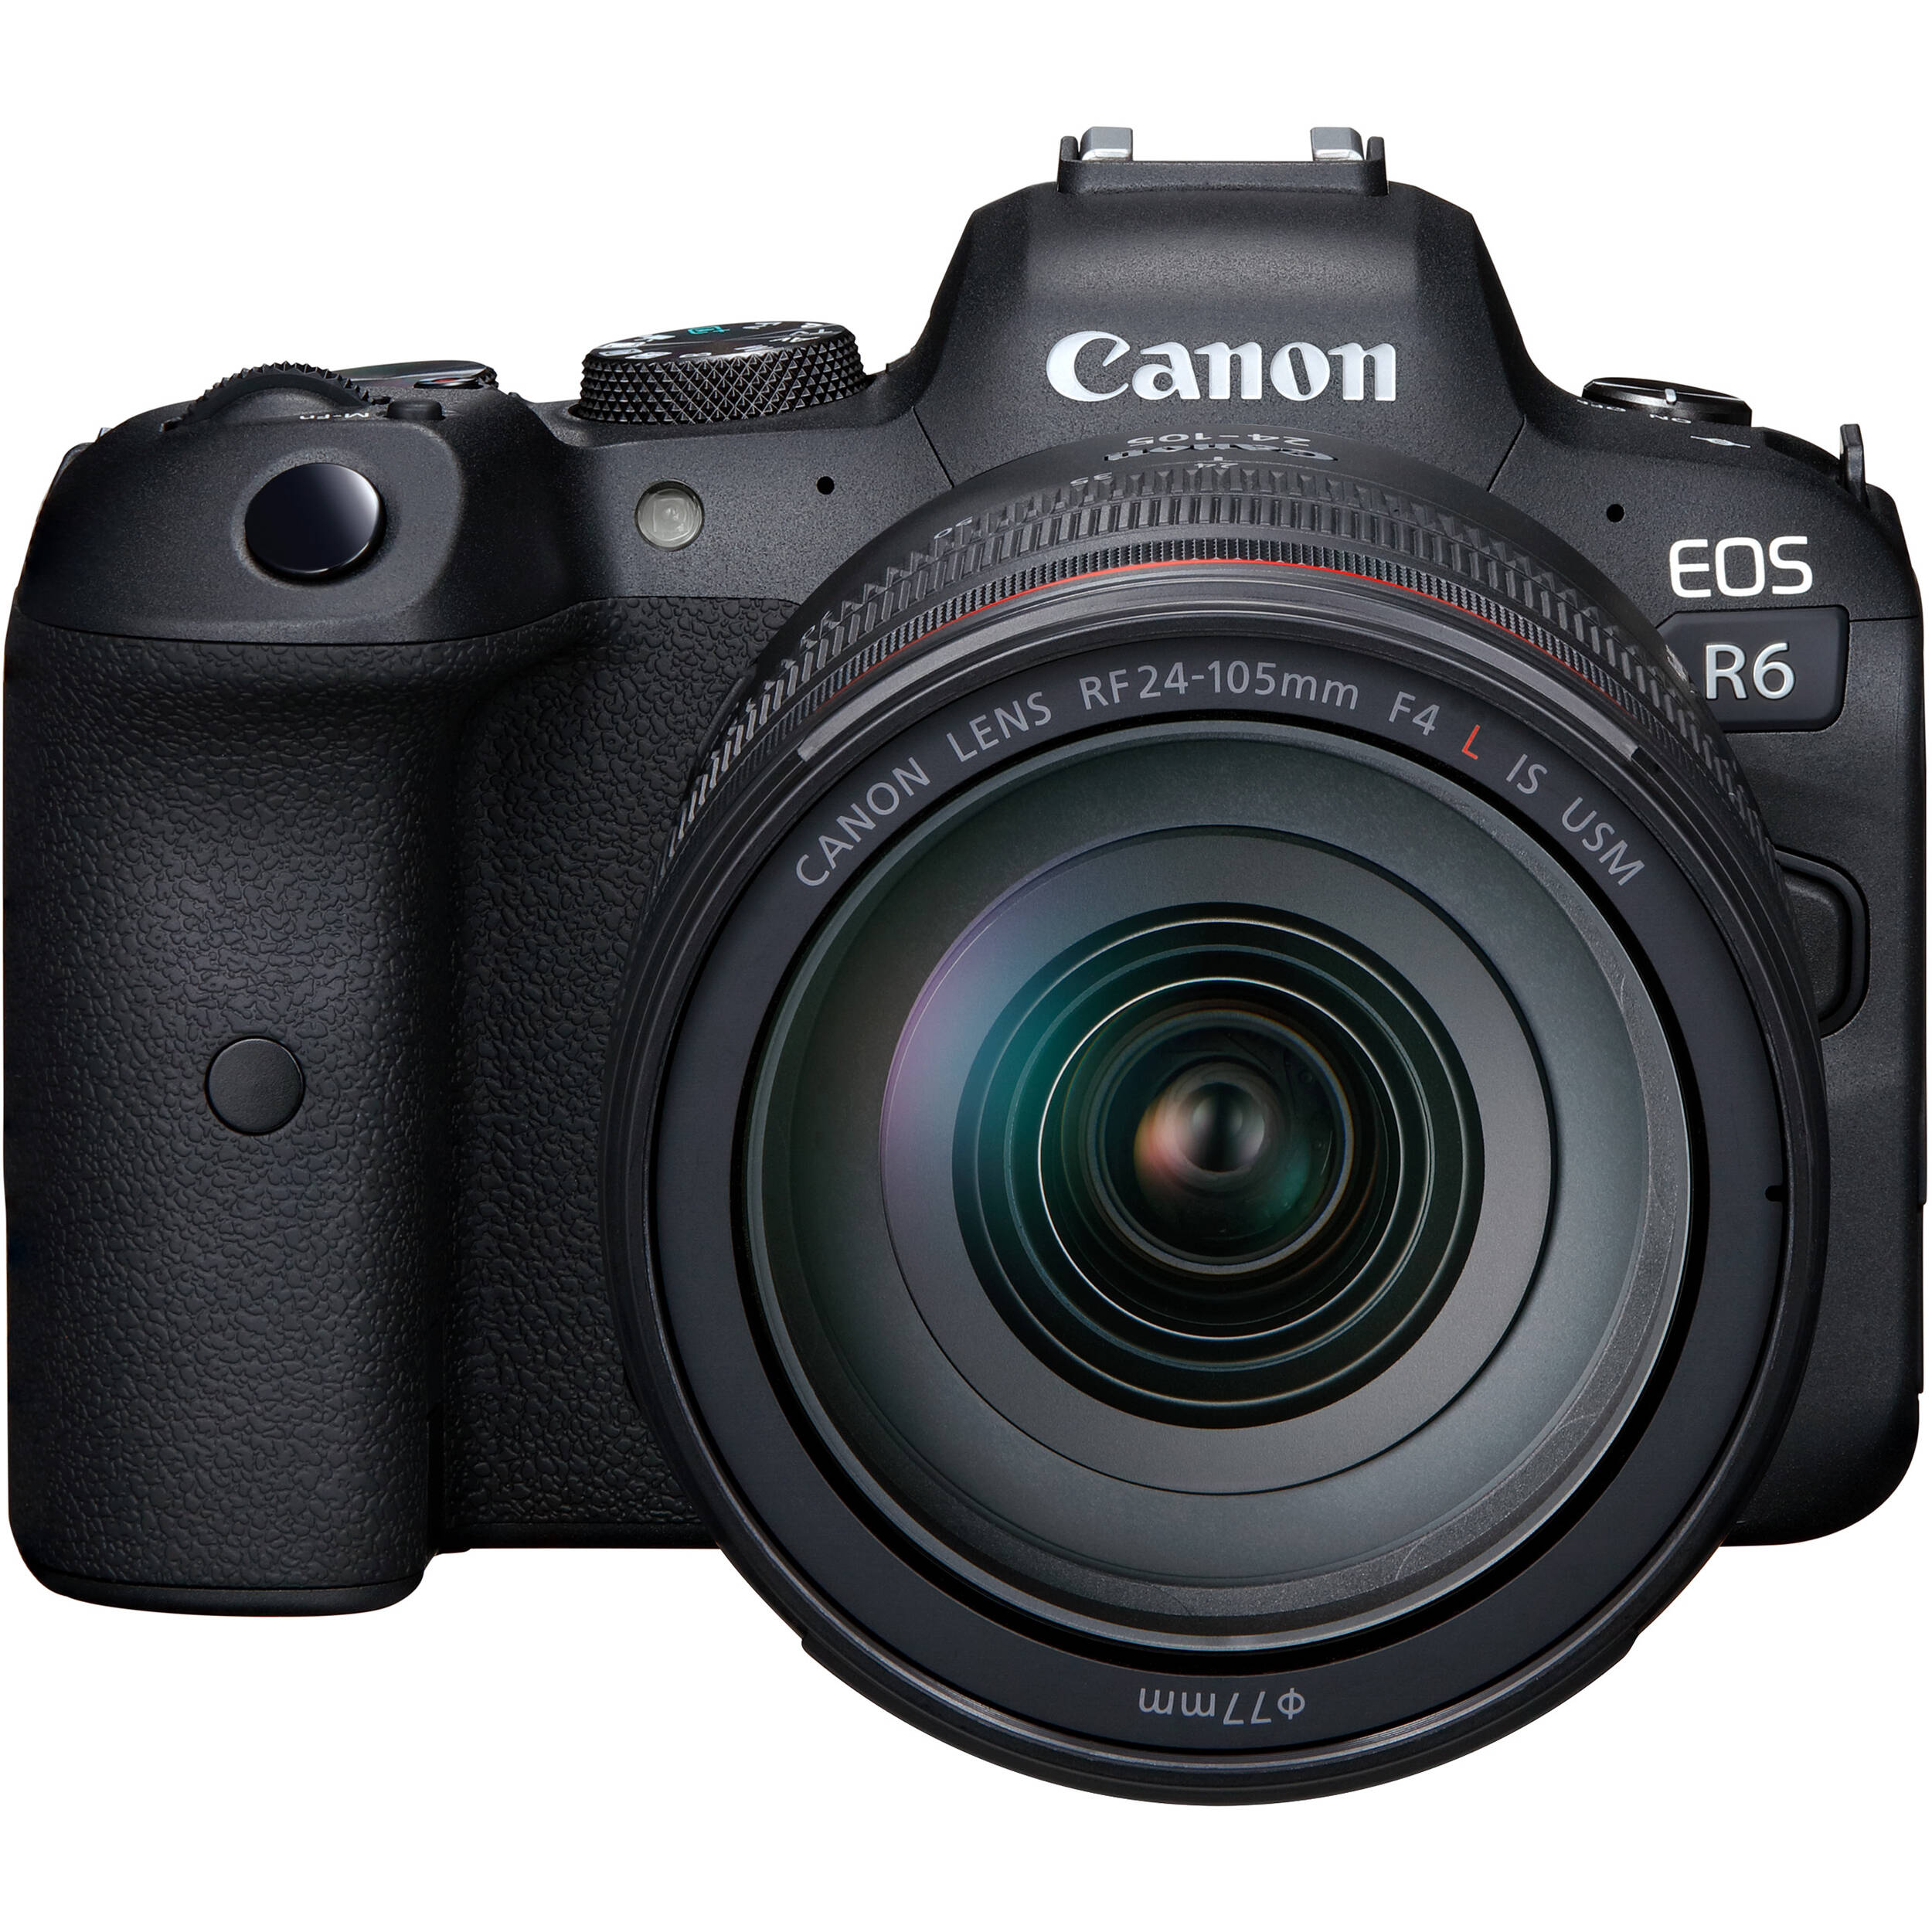 Canon R6 Price in Pakistan